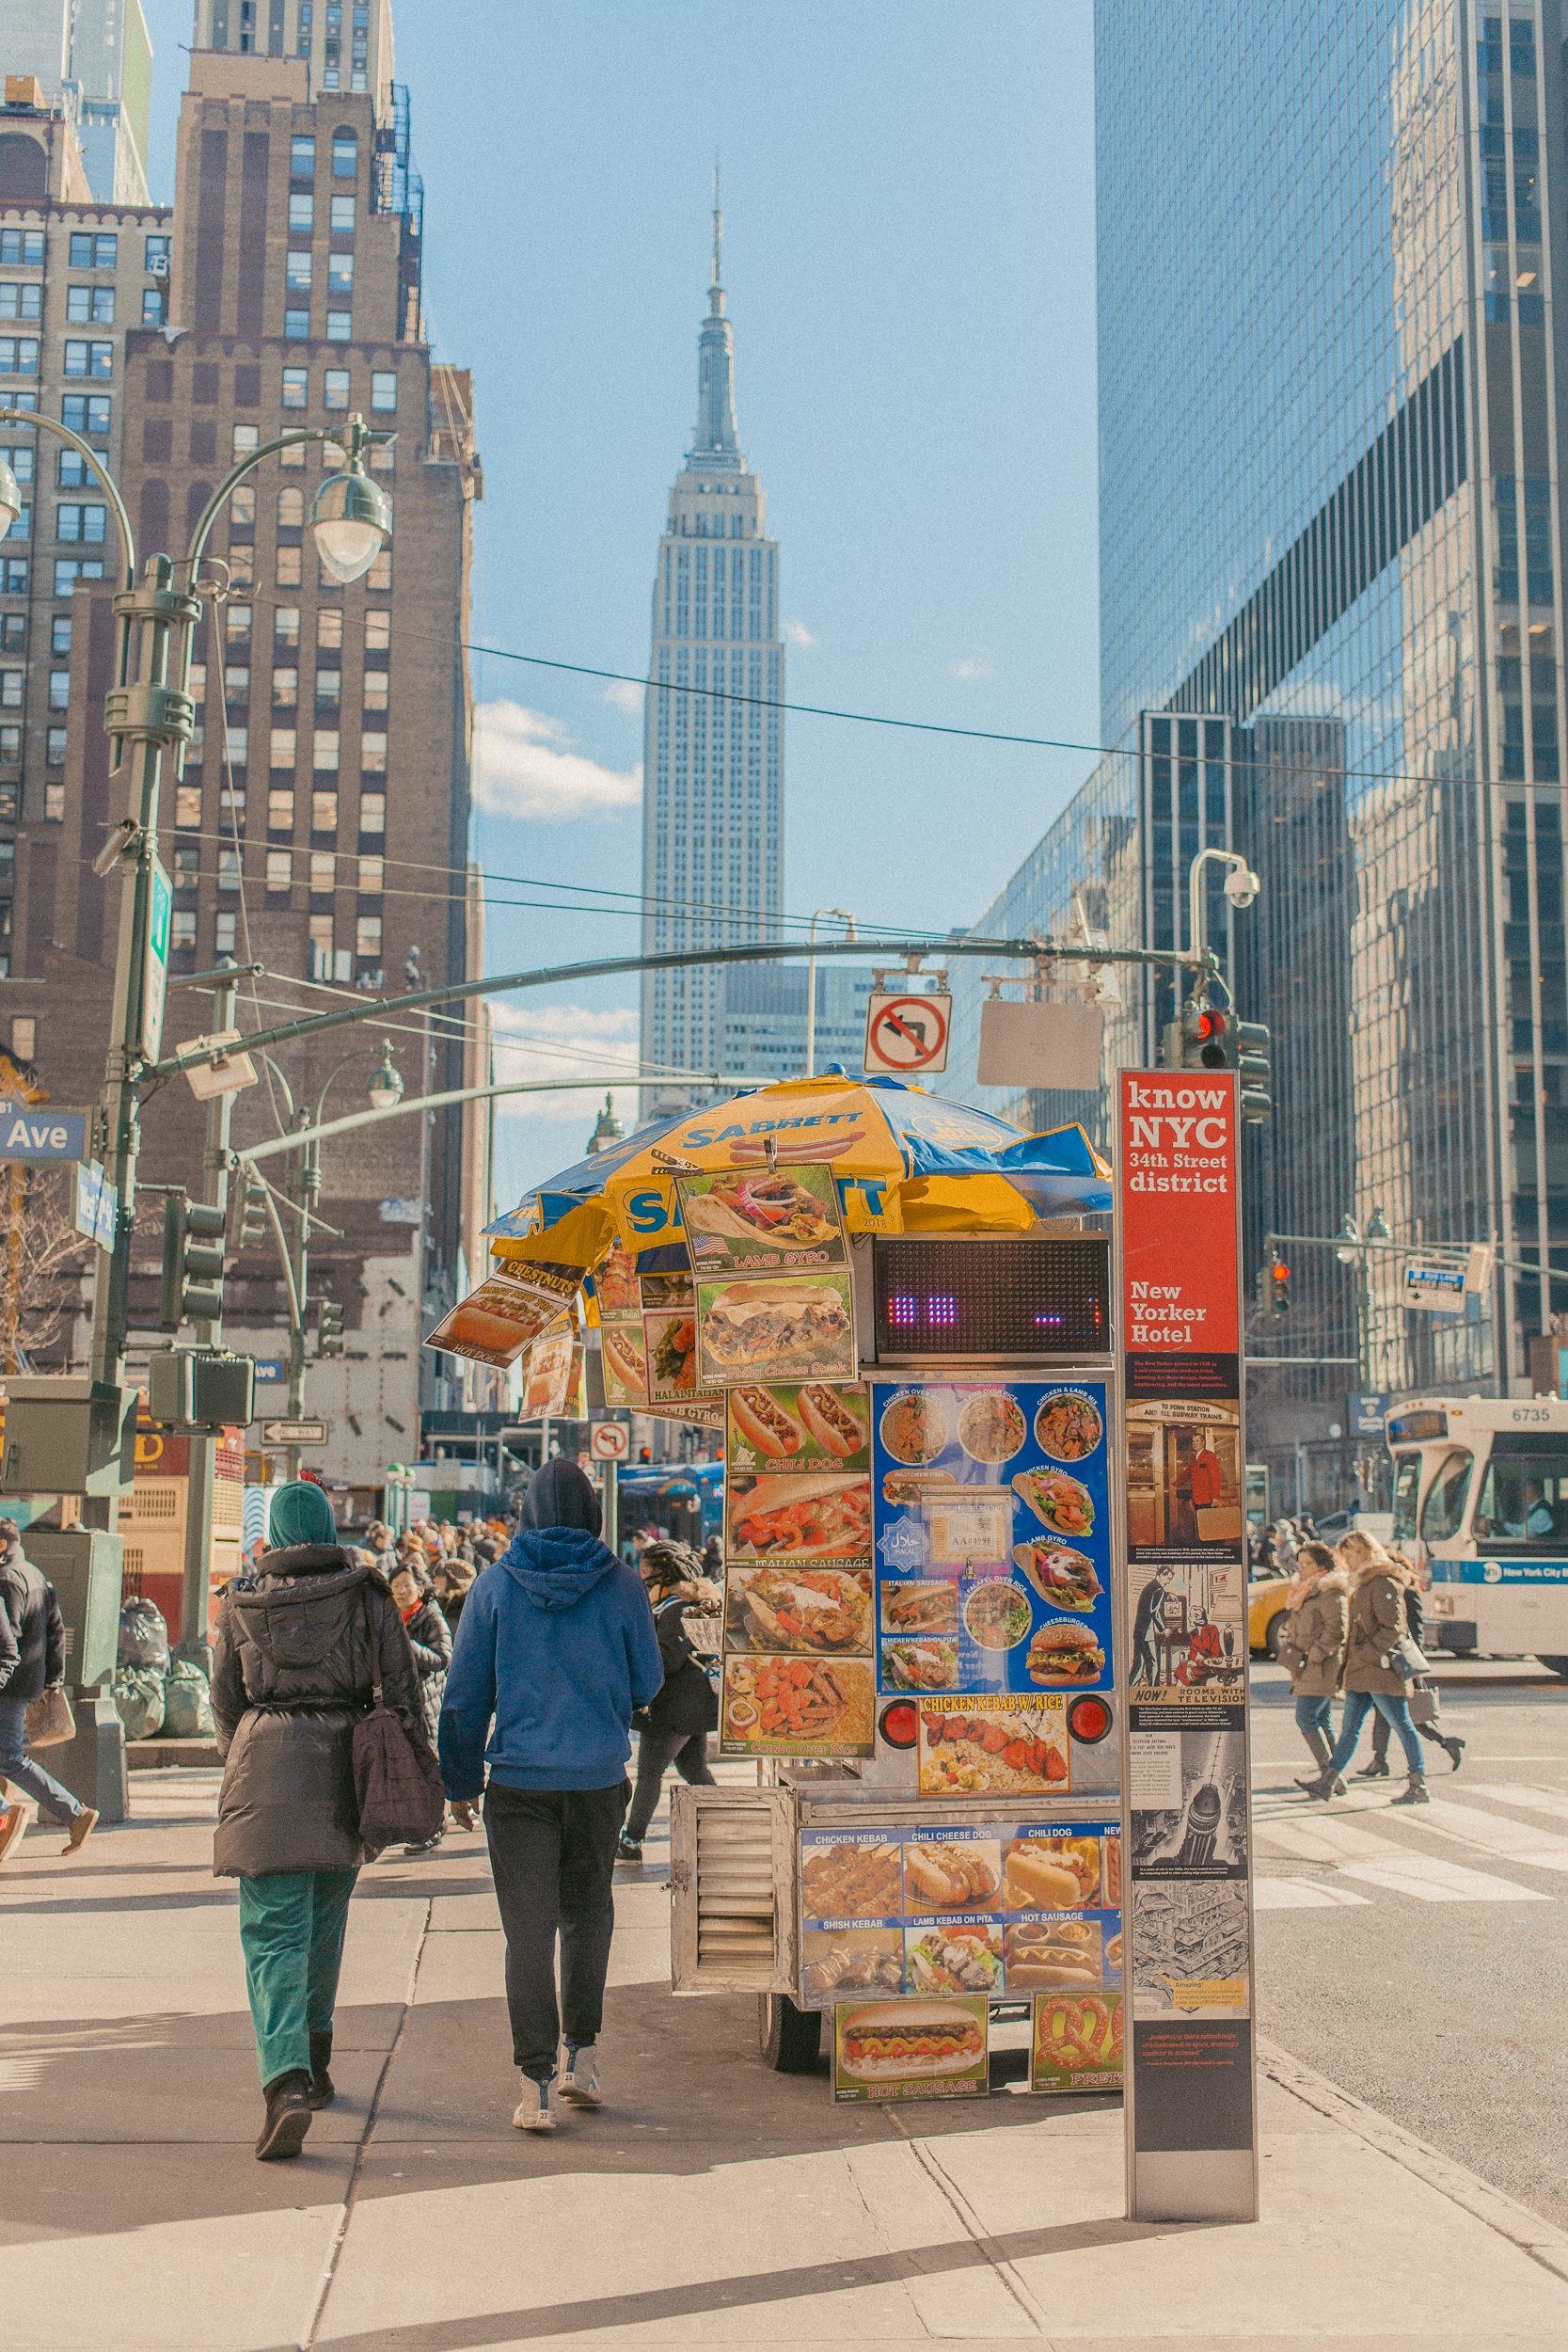 PLACES_NYC_071218_69.jpg